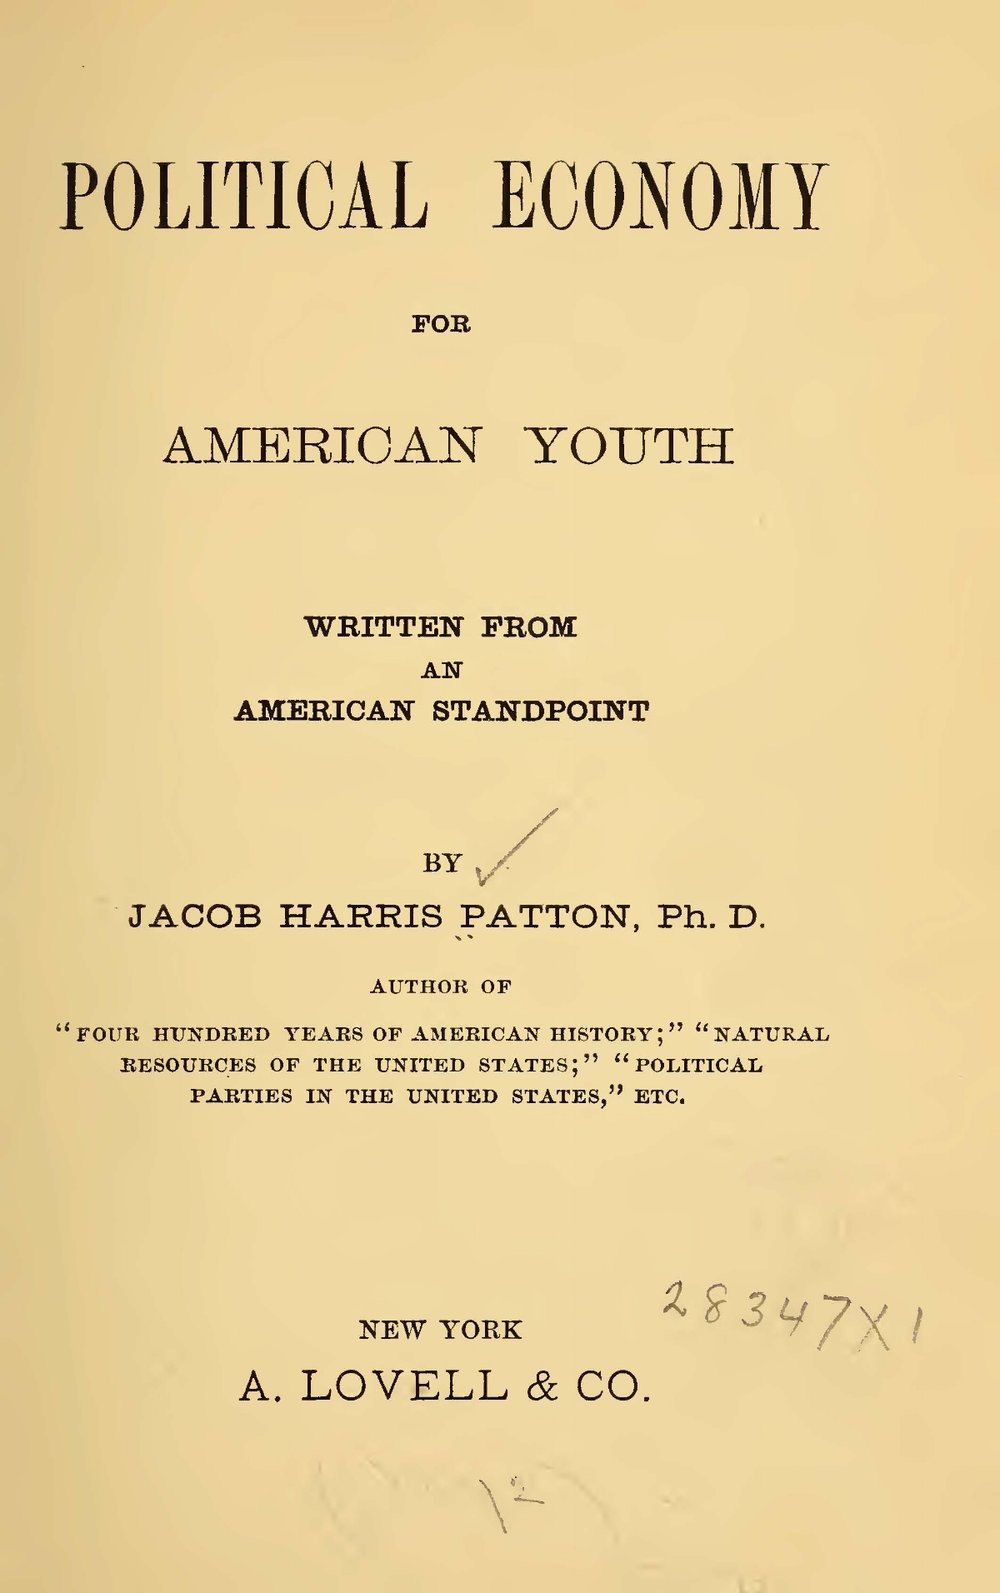 Patton, Jacob Harris, Political Economy for American Youth Title Page.jpg